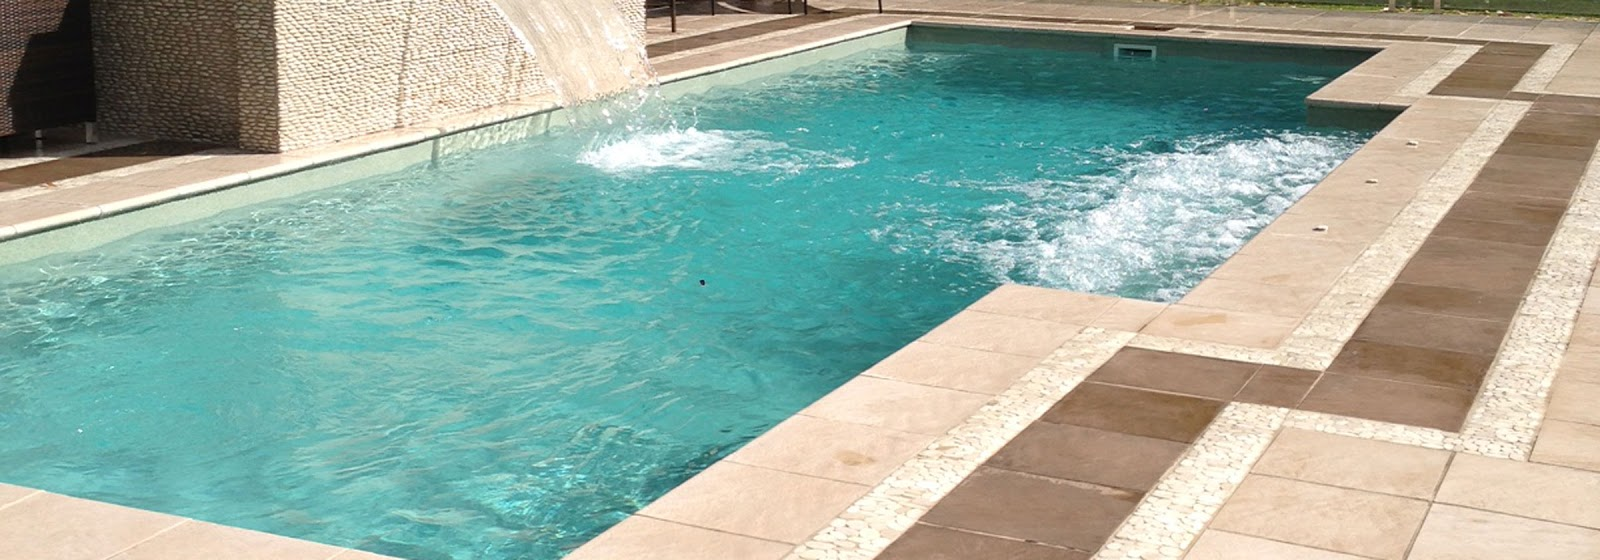 Select a Reputed Swimming Pool Builder in Canberra ...